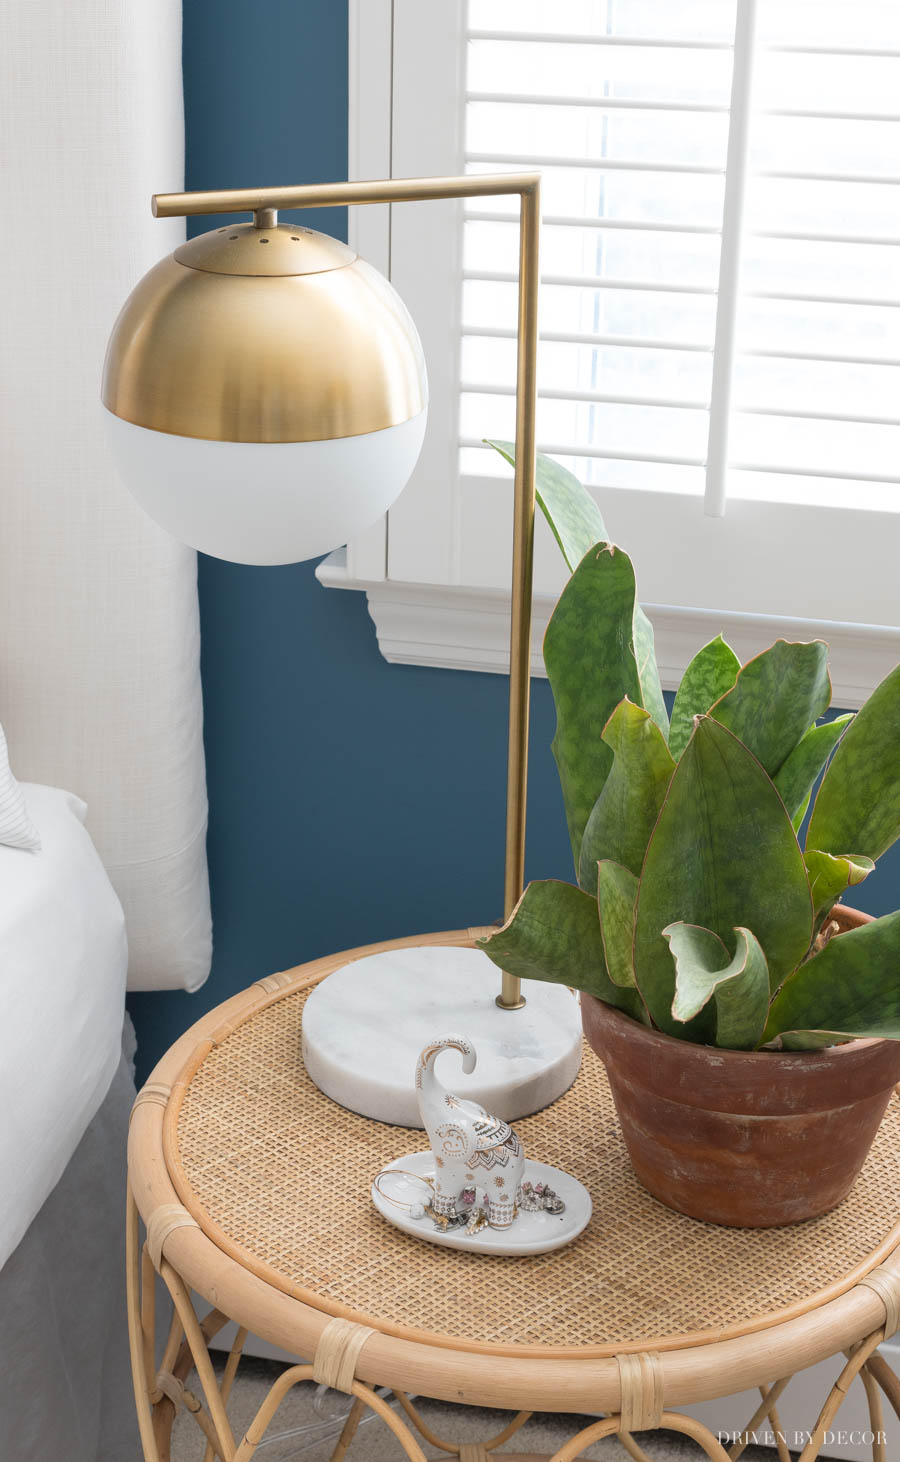 Such a great price for a brass globe lamp! Love the marble base!